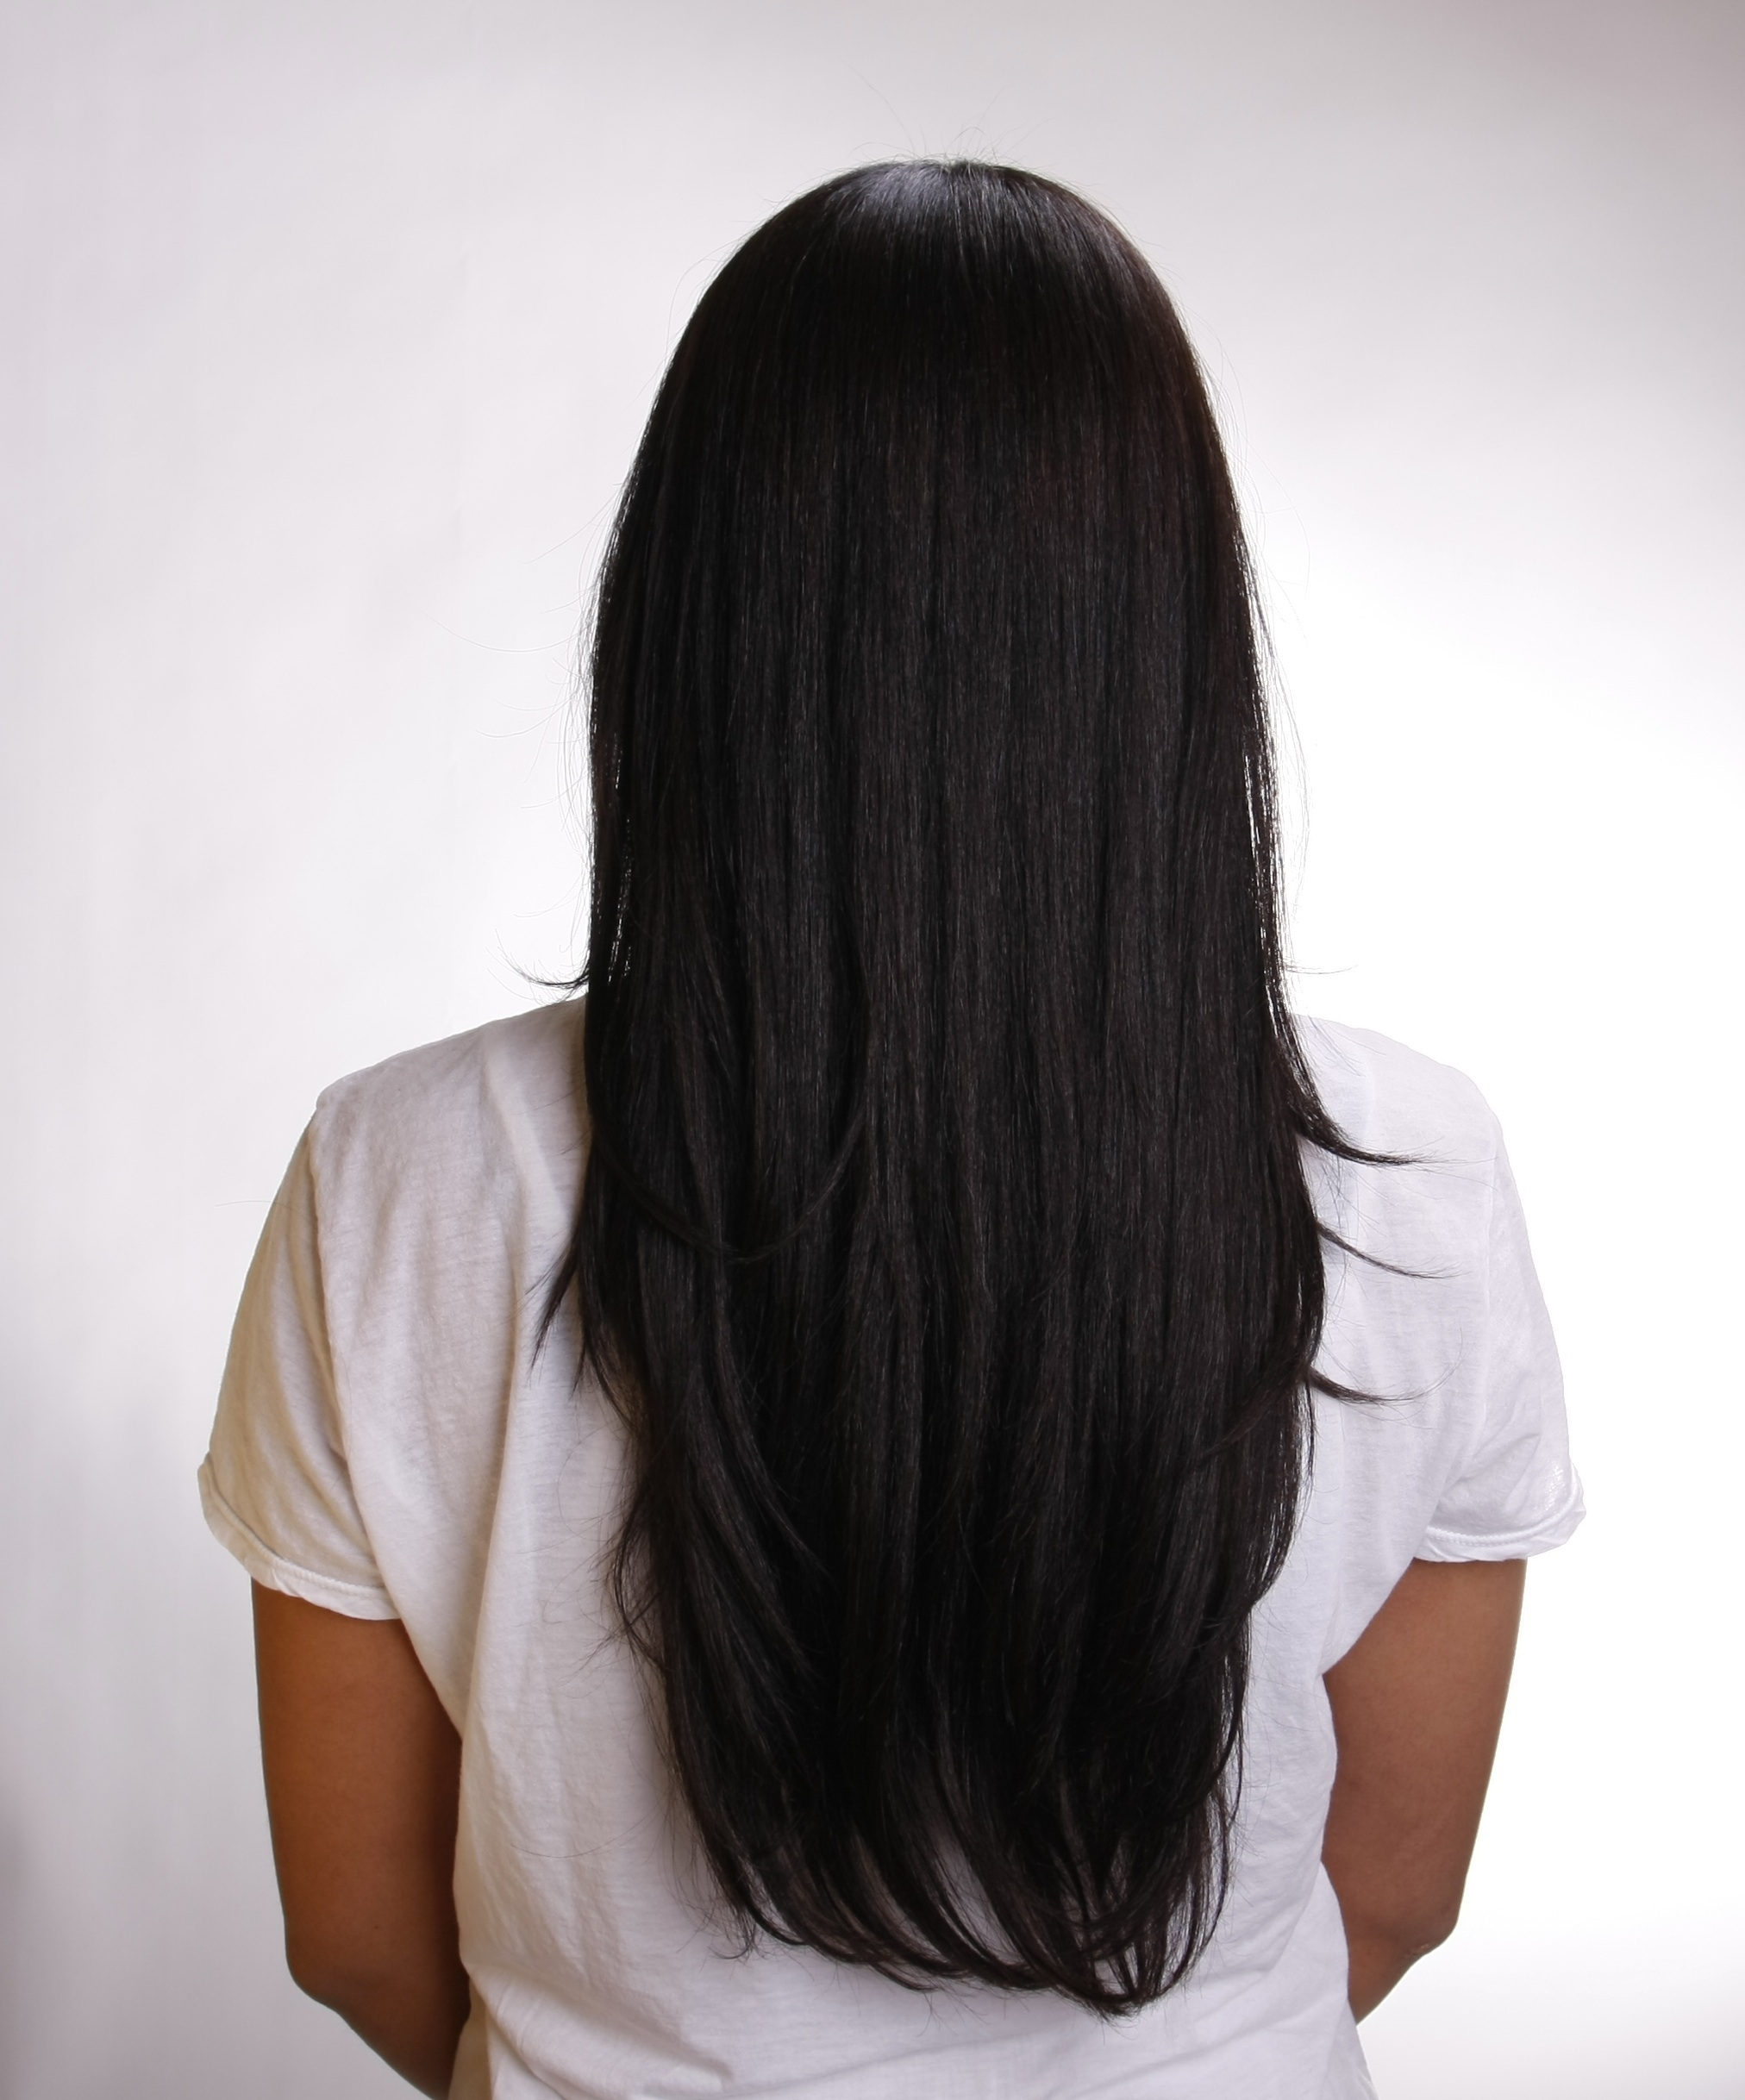 Clip In Hairextensions amp Flip In   Glamour Your Hair